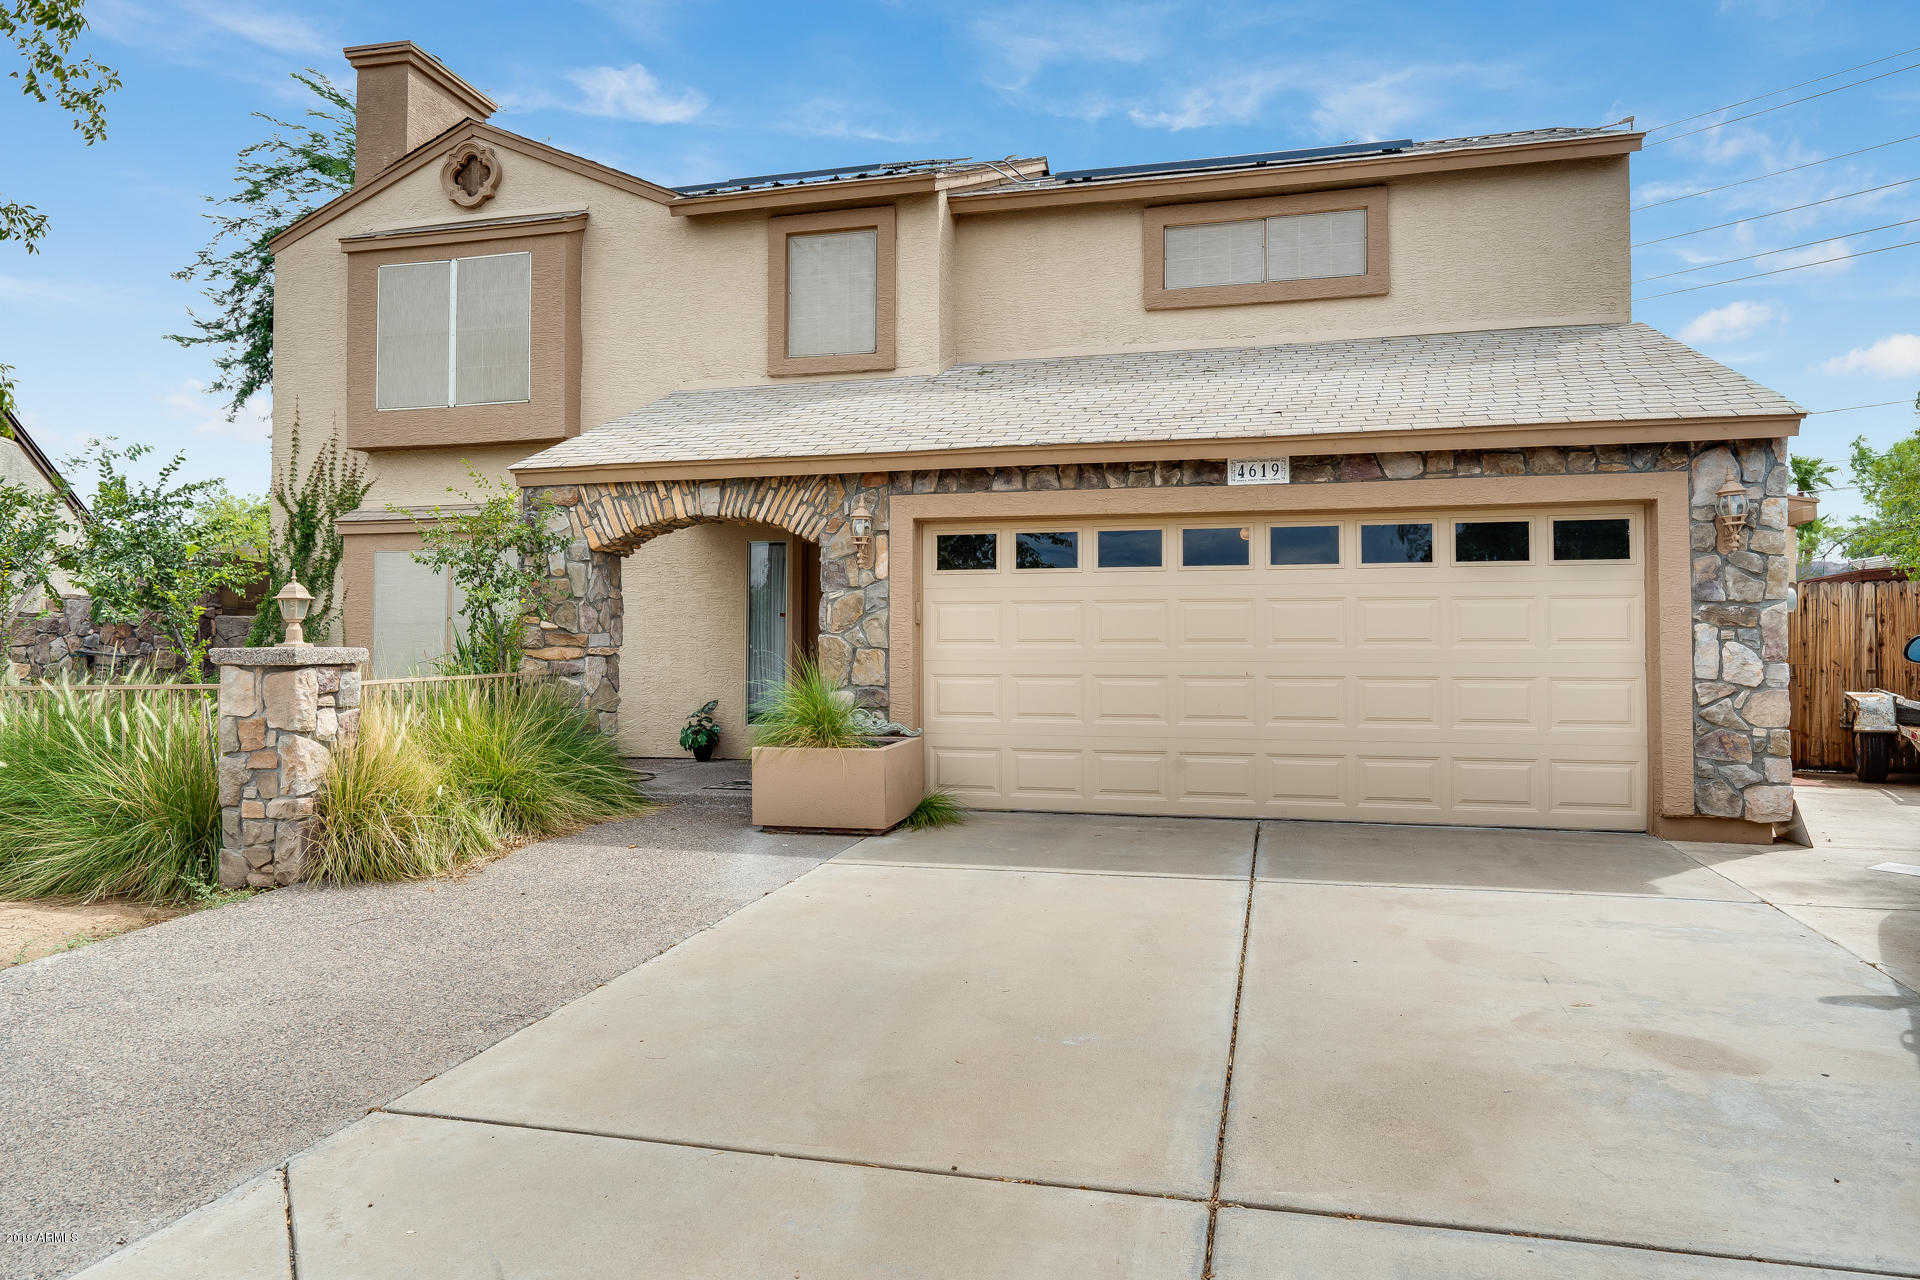 $339,990 - 5Br/3Ba - Home for Sale in Overland Trail, Glendale